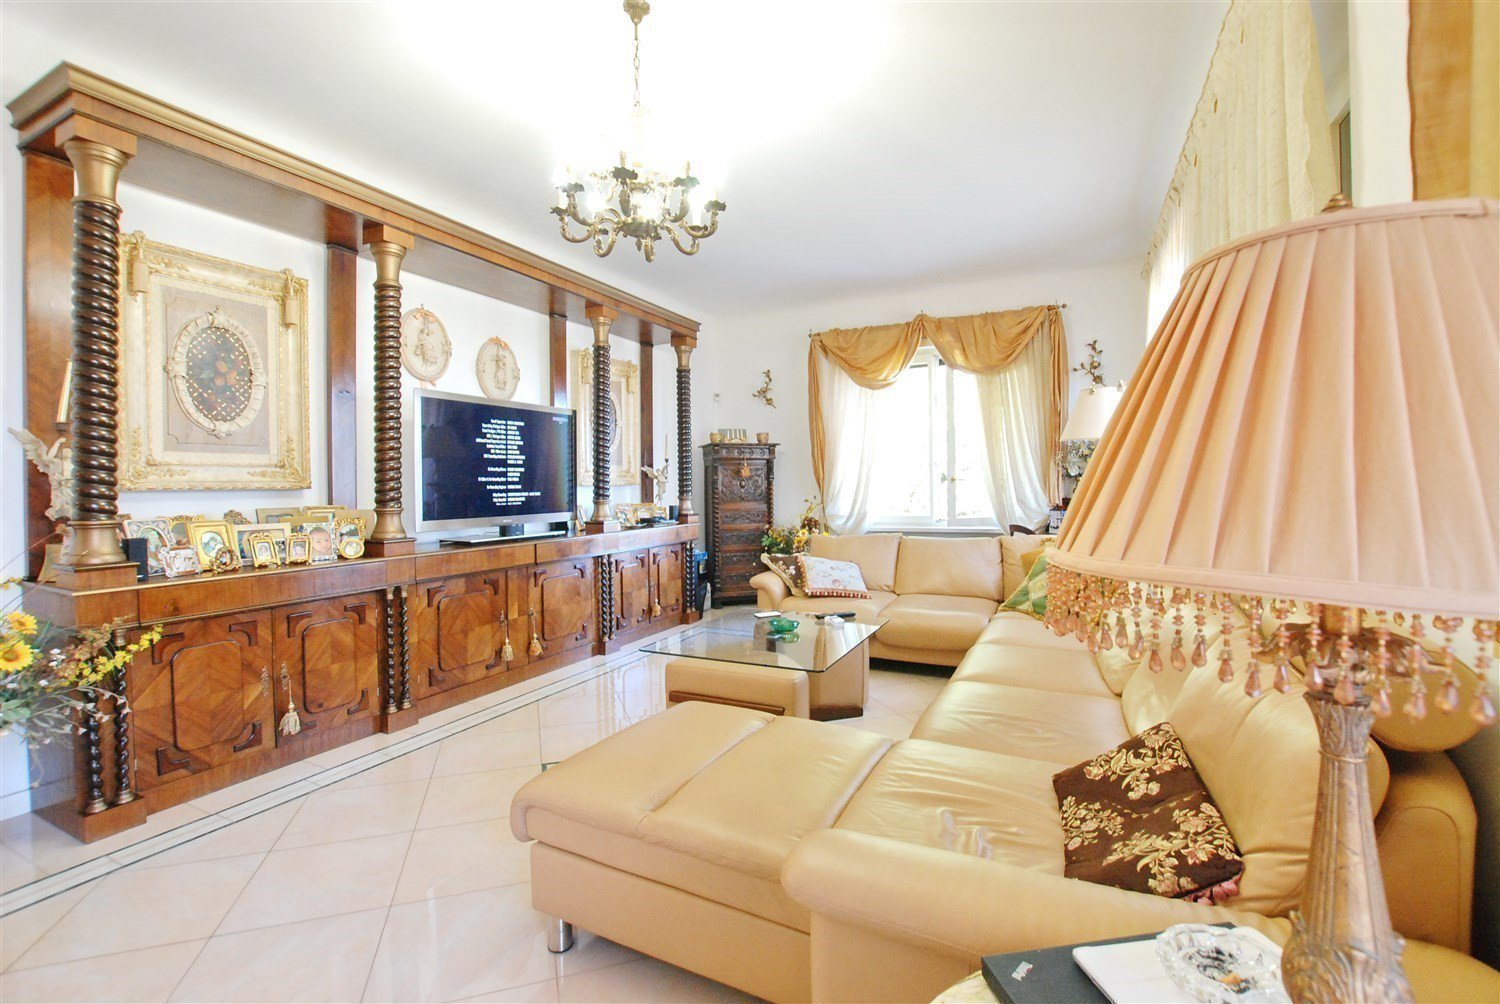 Neoclassical villa for sale in Gignese